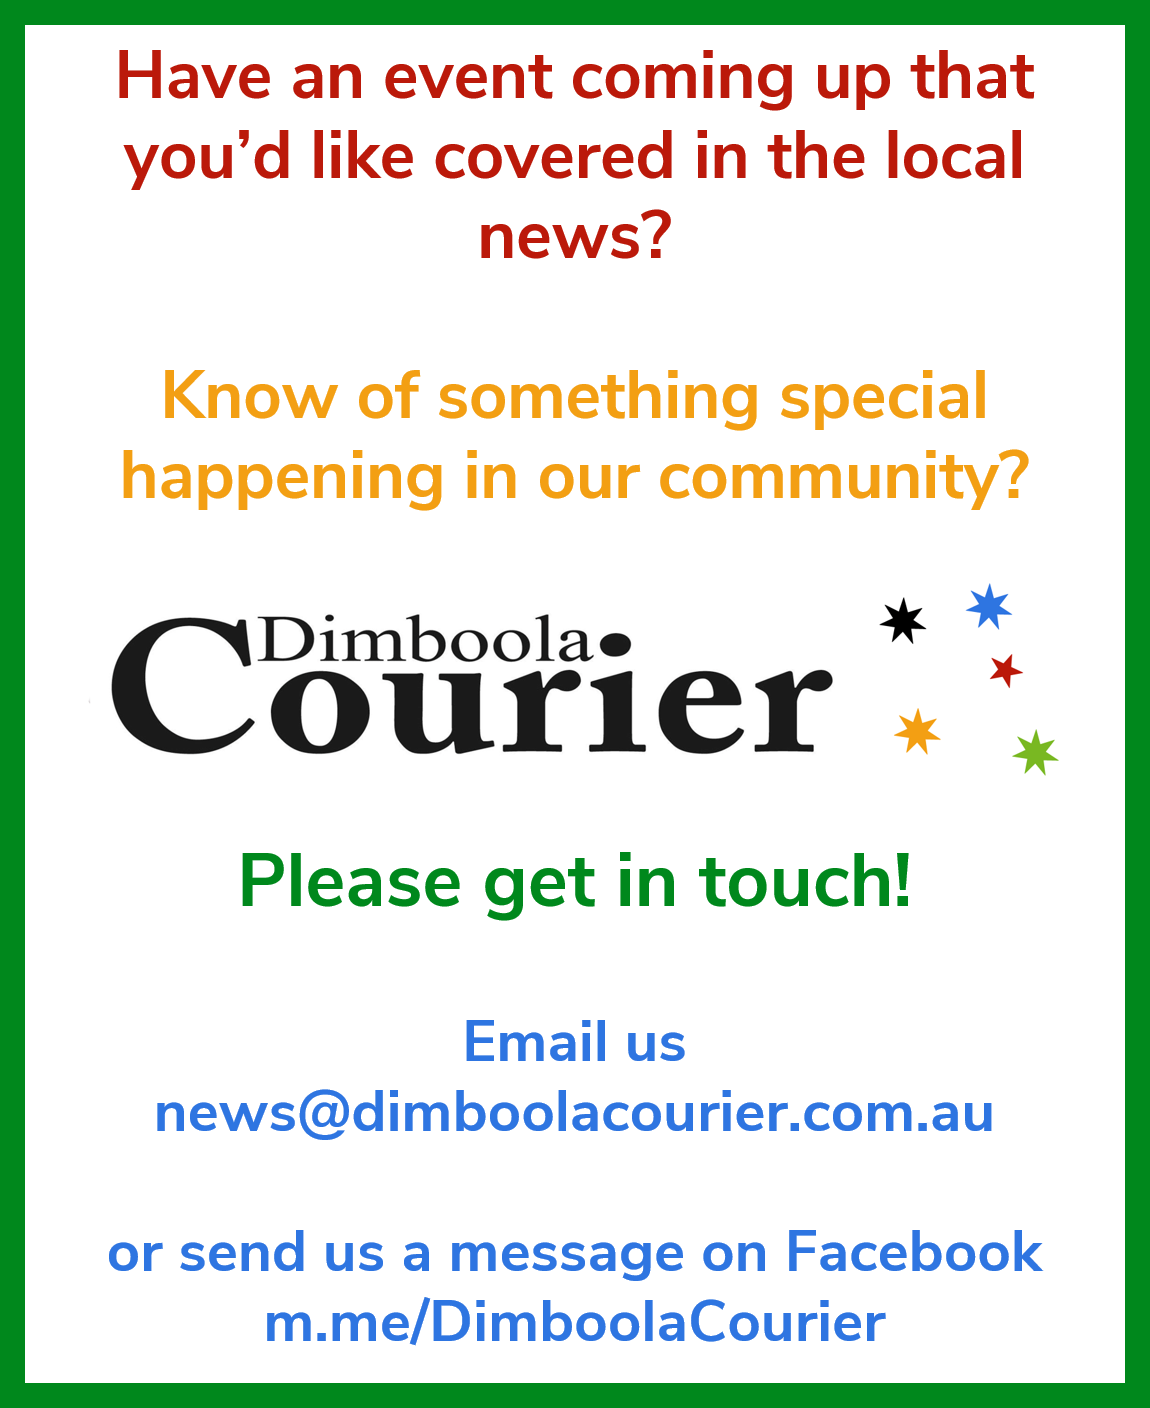 Dimboola Courier